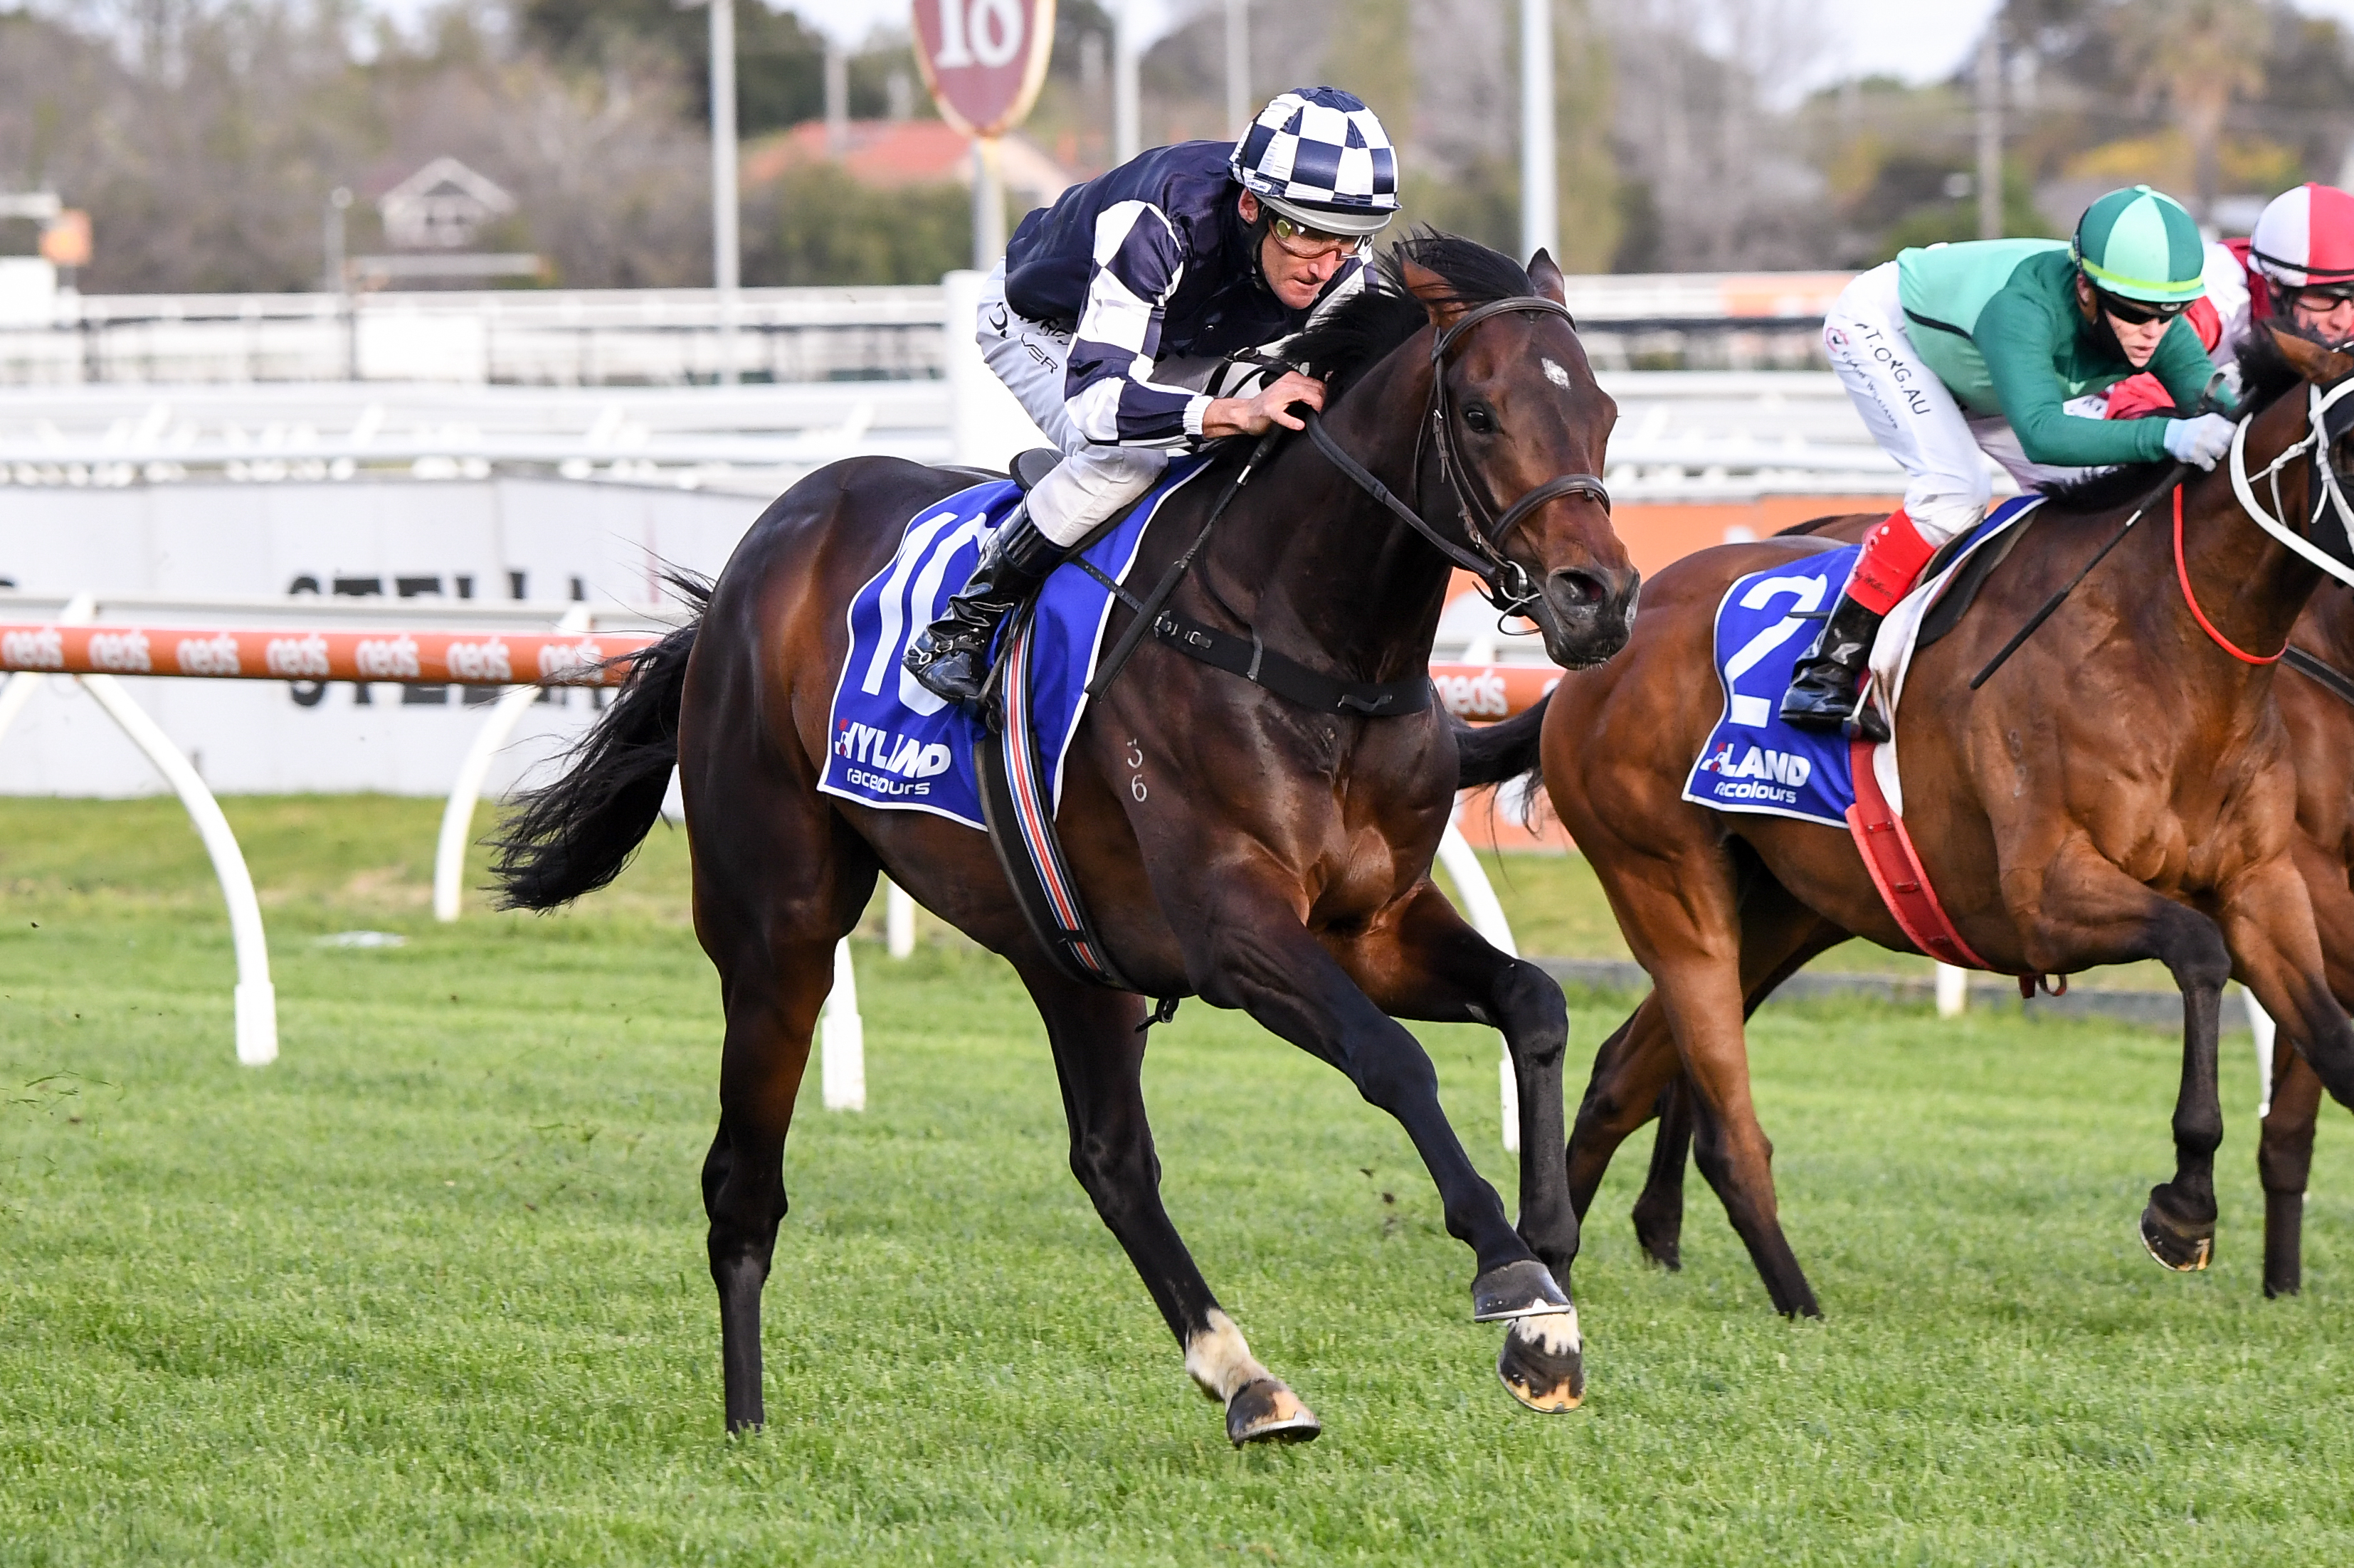 Russian Camelot (IRE) ridden by Damien Oliver wins the Hyland Race Colours Underwood Stakes  at Caulfield Racecourse on September 26, 2020 in Caulfield, Australia. (Pat Scala/Racing Photos)